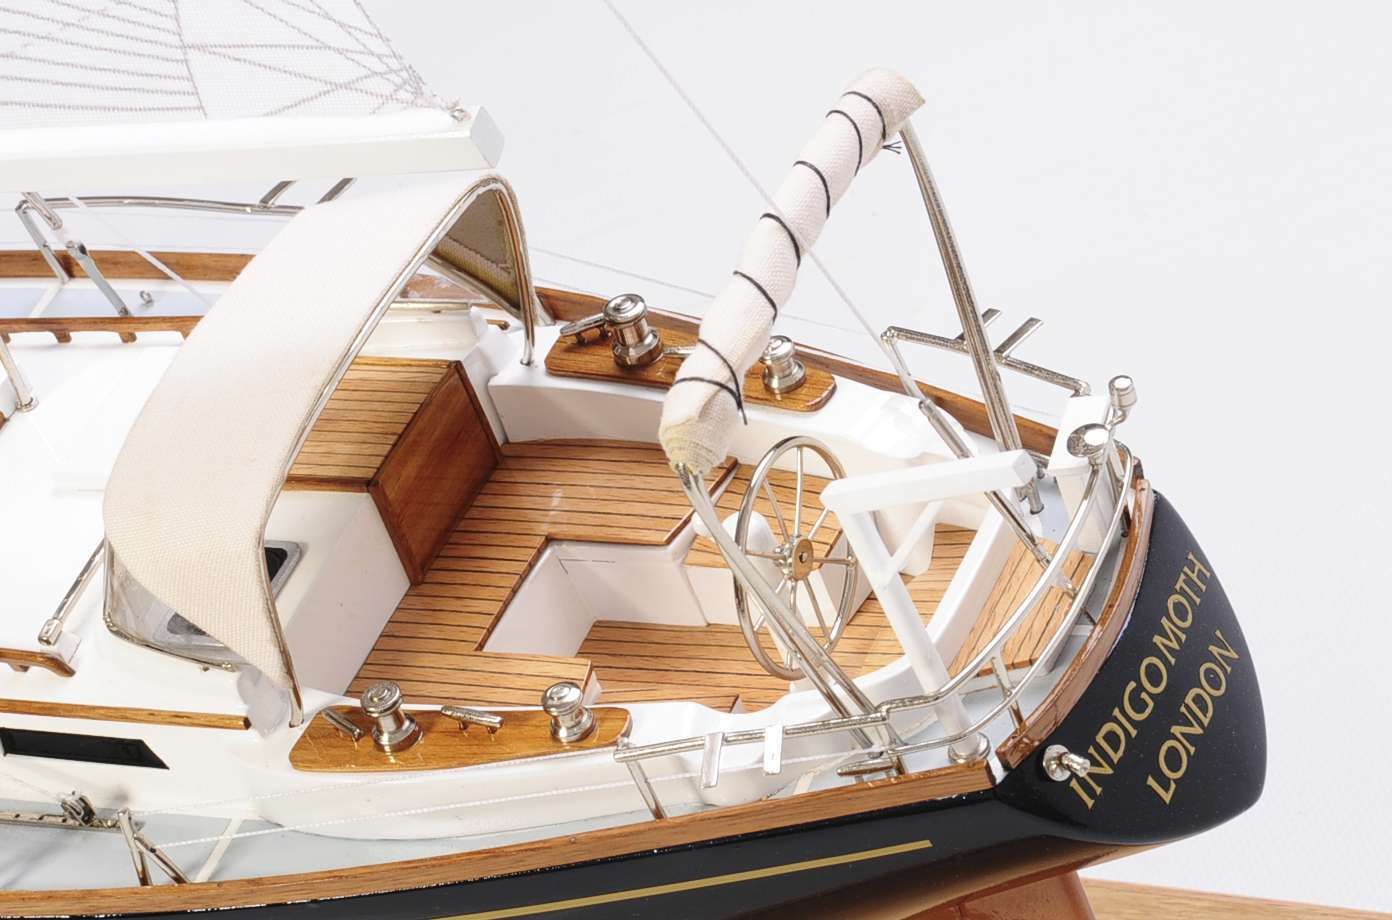 1438-4717-Indigo-Moth-Model-Yacht